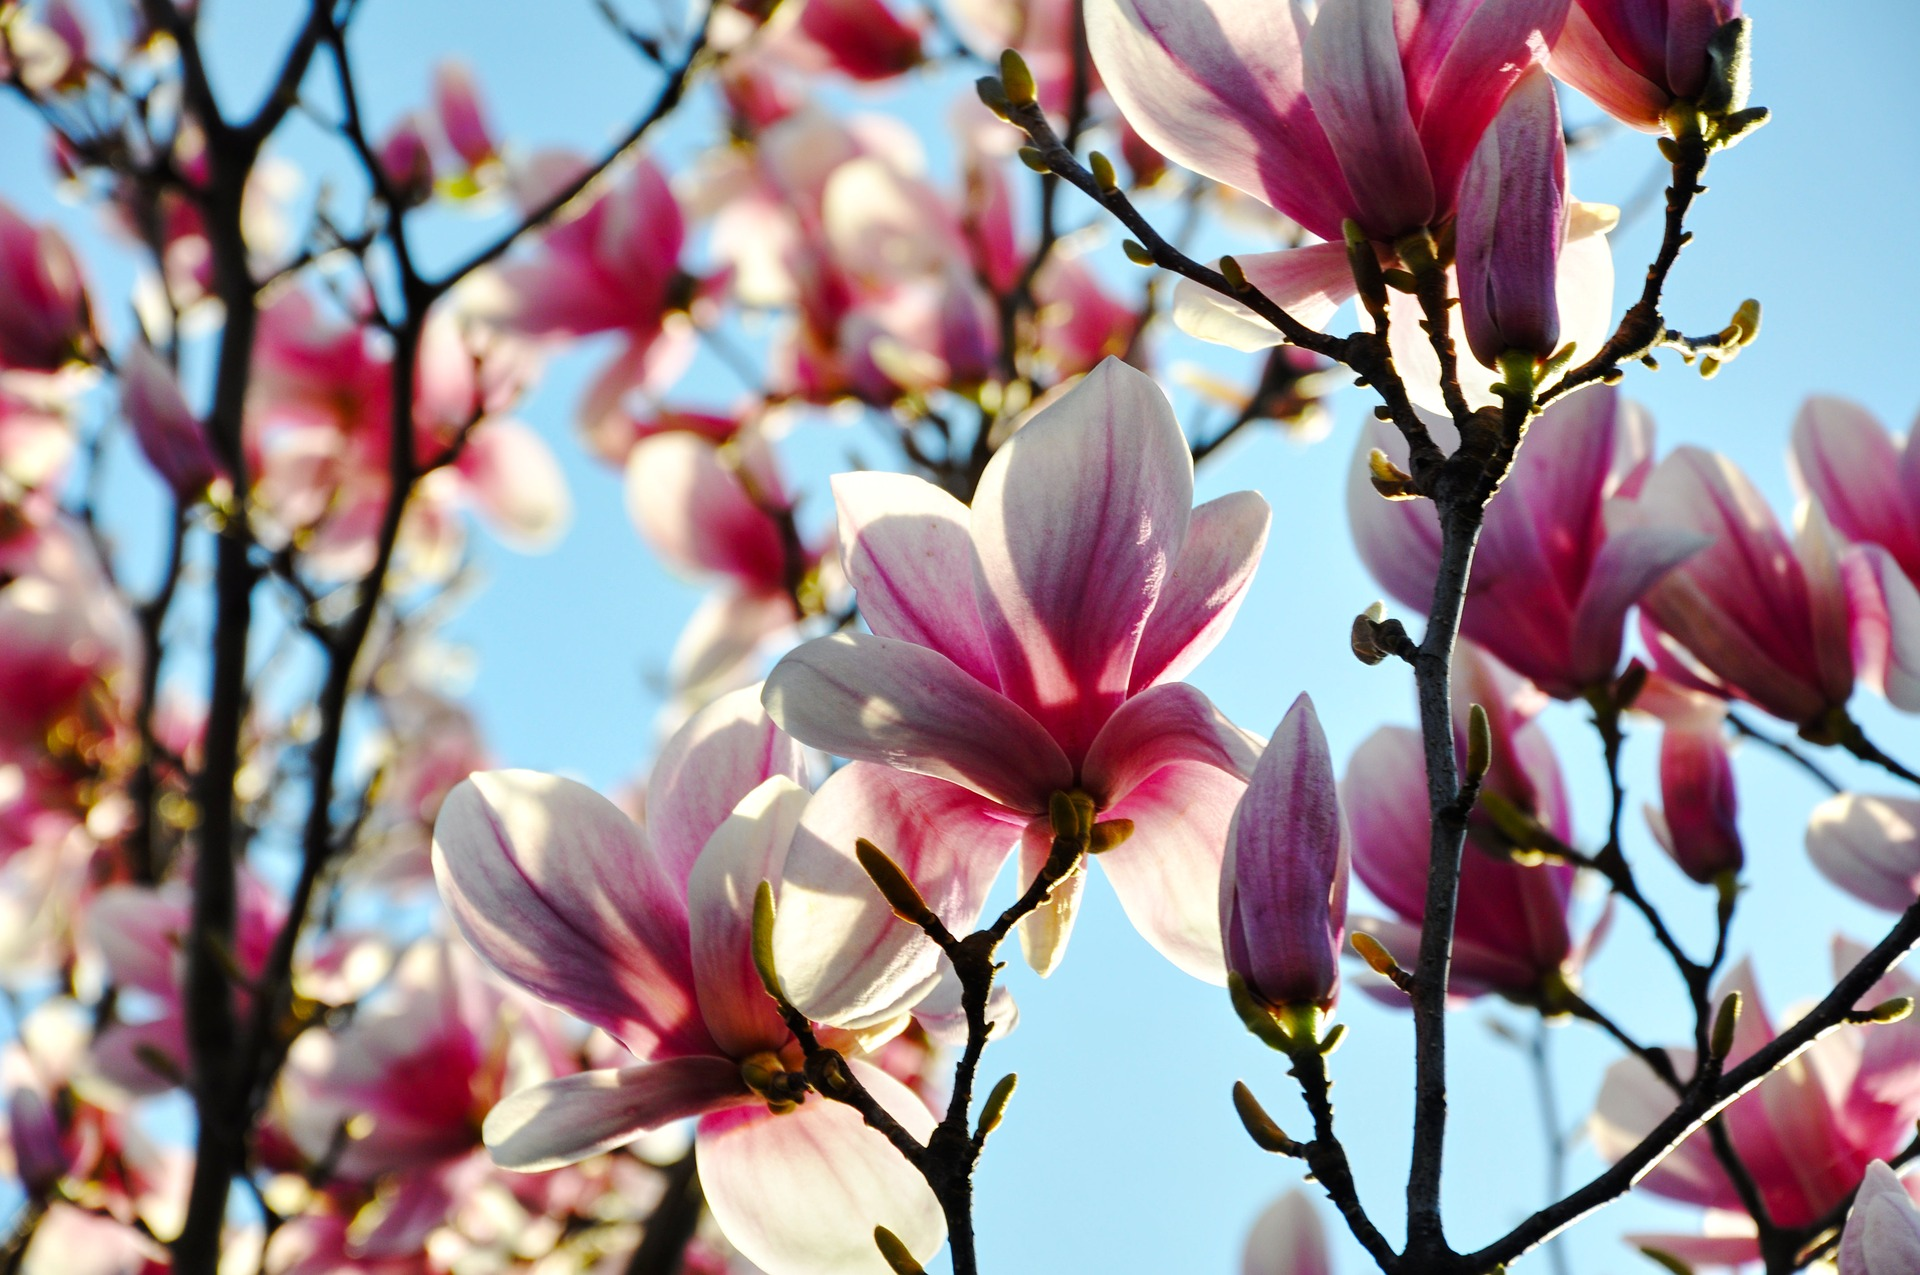 Public domain. [Photo description: branches of a magnolia tree covered in pink blossoms.]